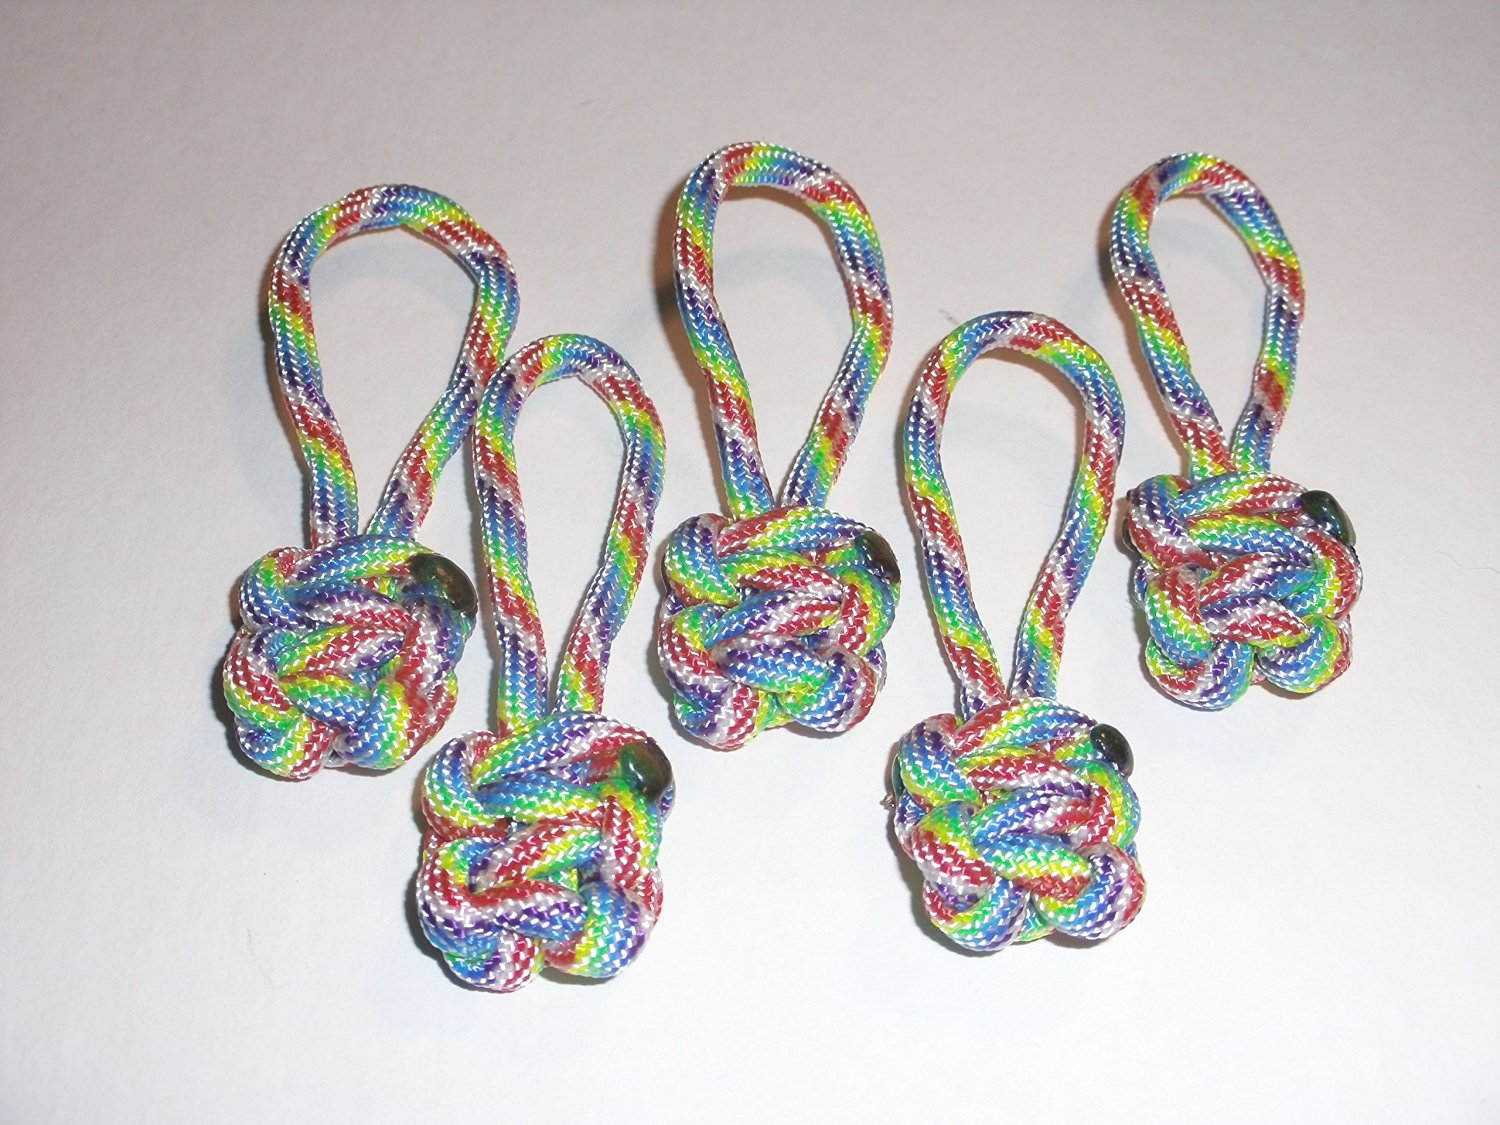 RedVex Paracord Zipper Pulls / Lanyards - Lot of 5 - ~2.5 - Tie Die Rainbow